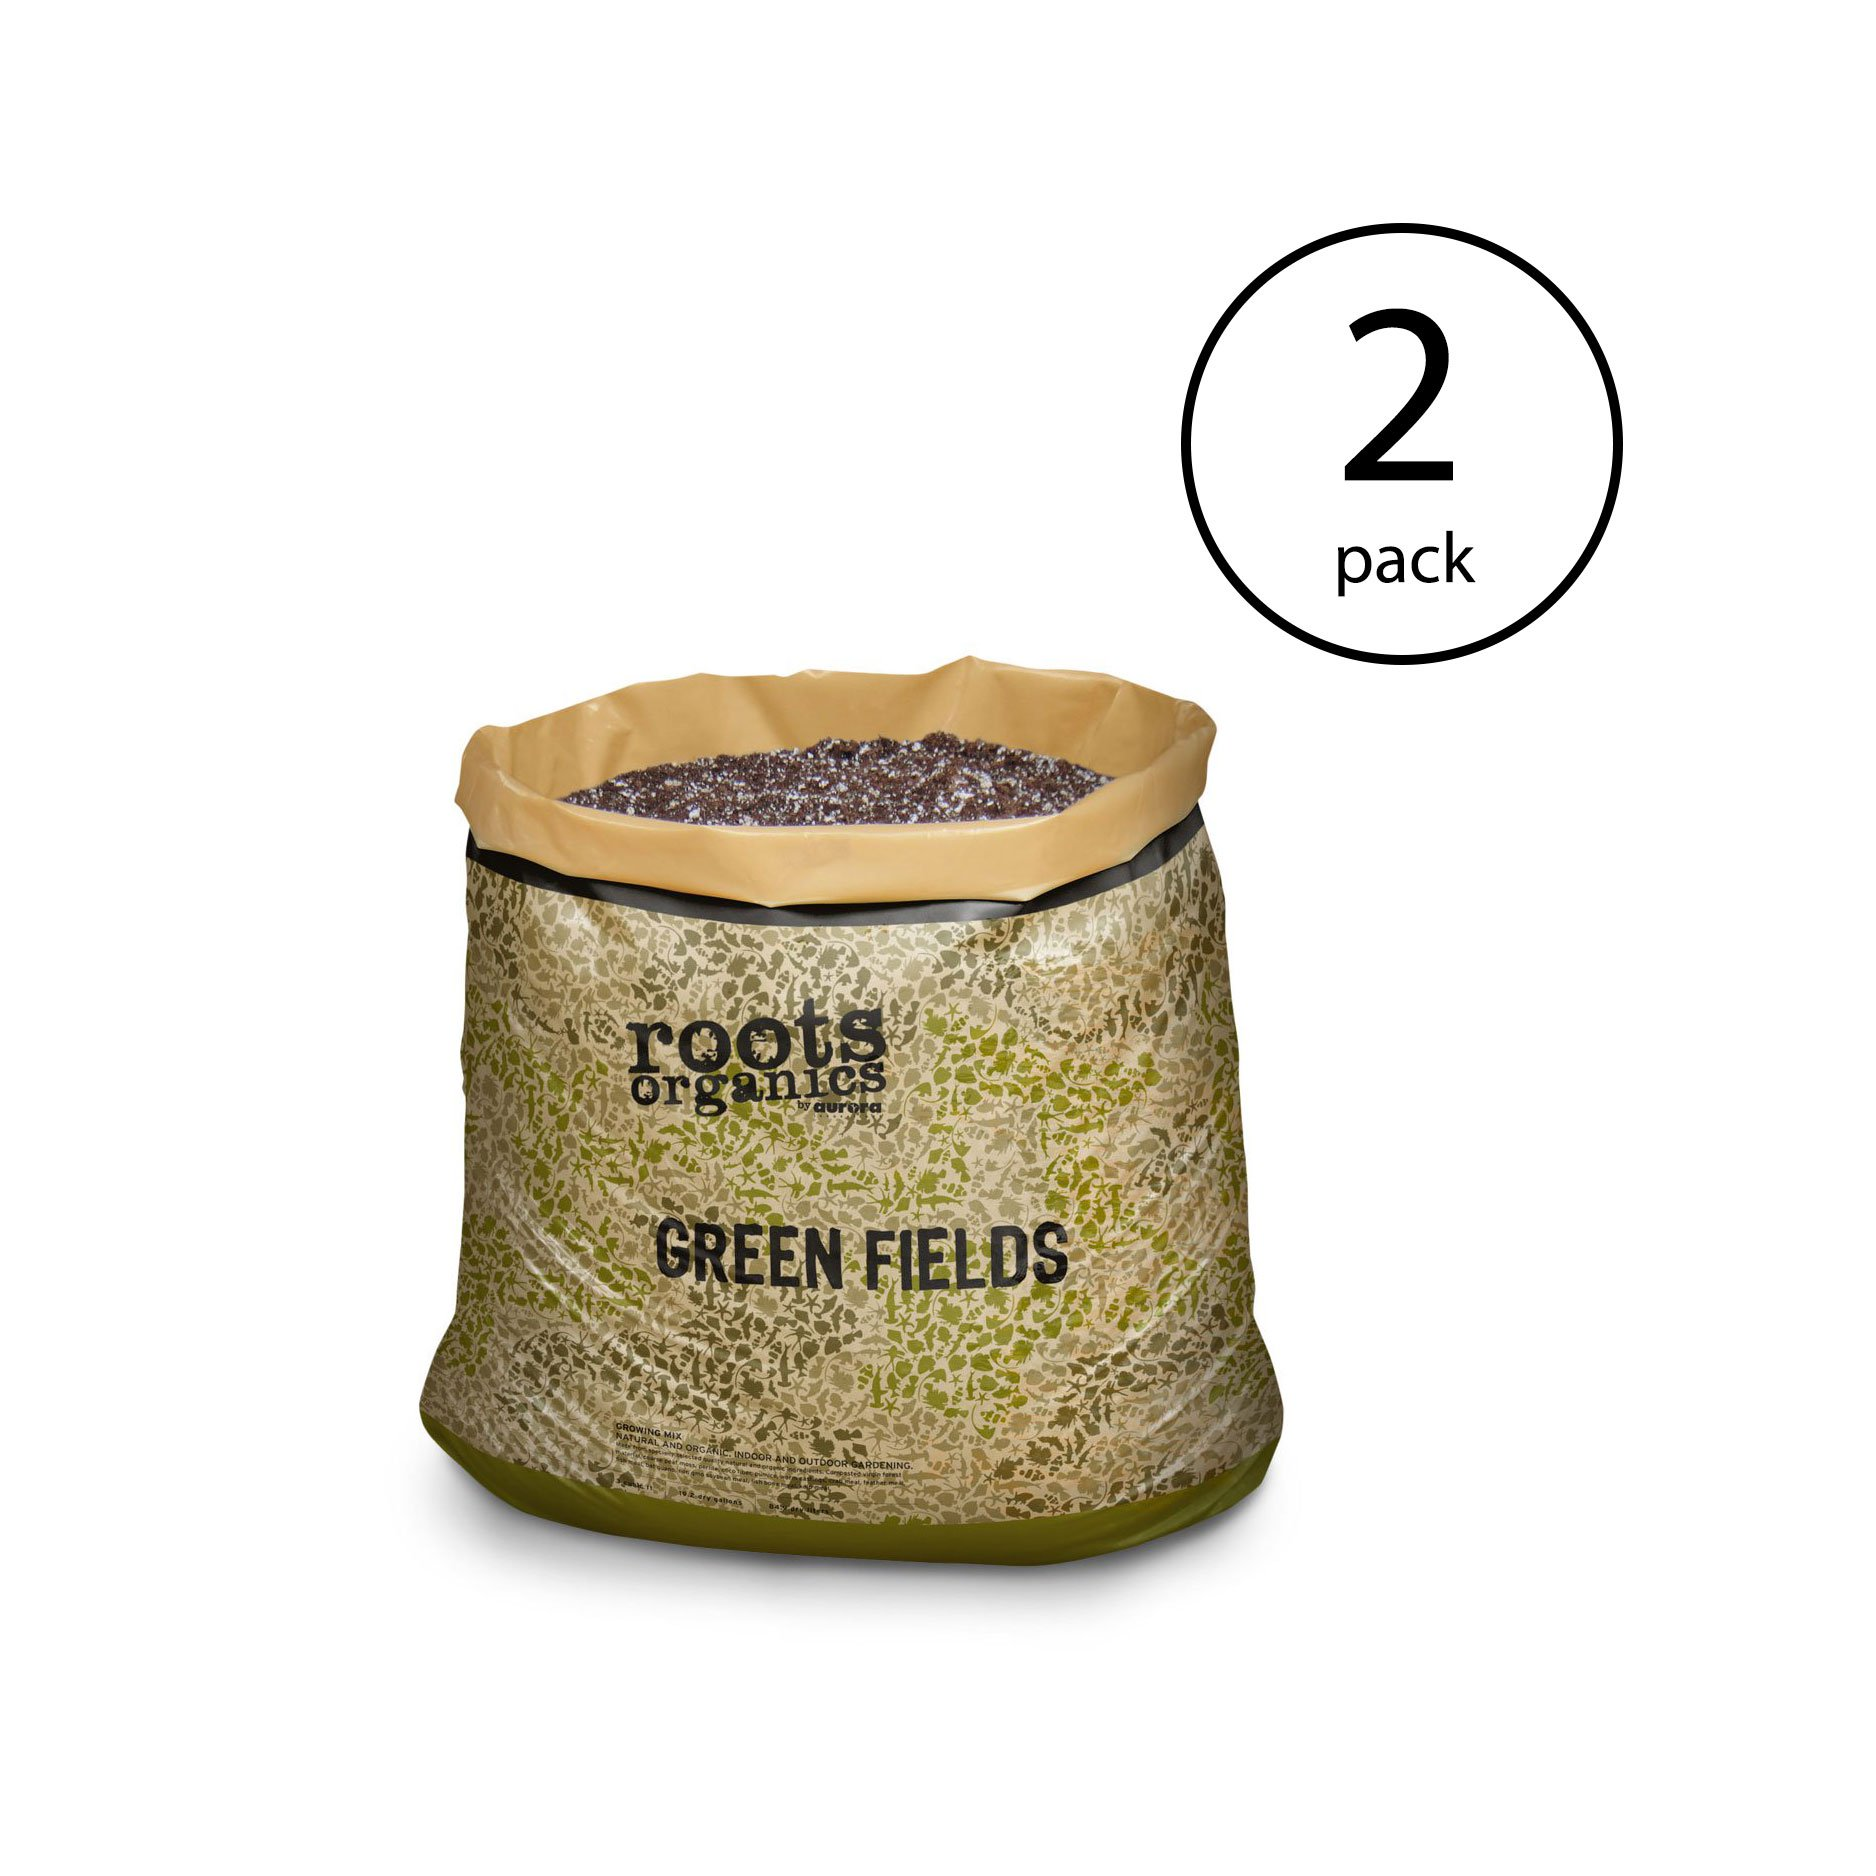 Roots Organics ROGF Hydroponics Green Fields Potting Soil, 1.5 cu ft (2 Pack)